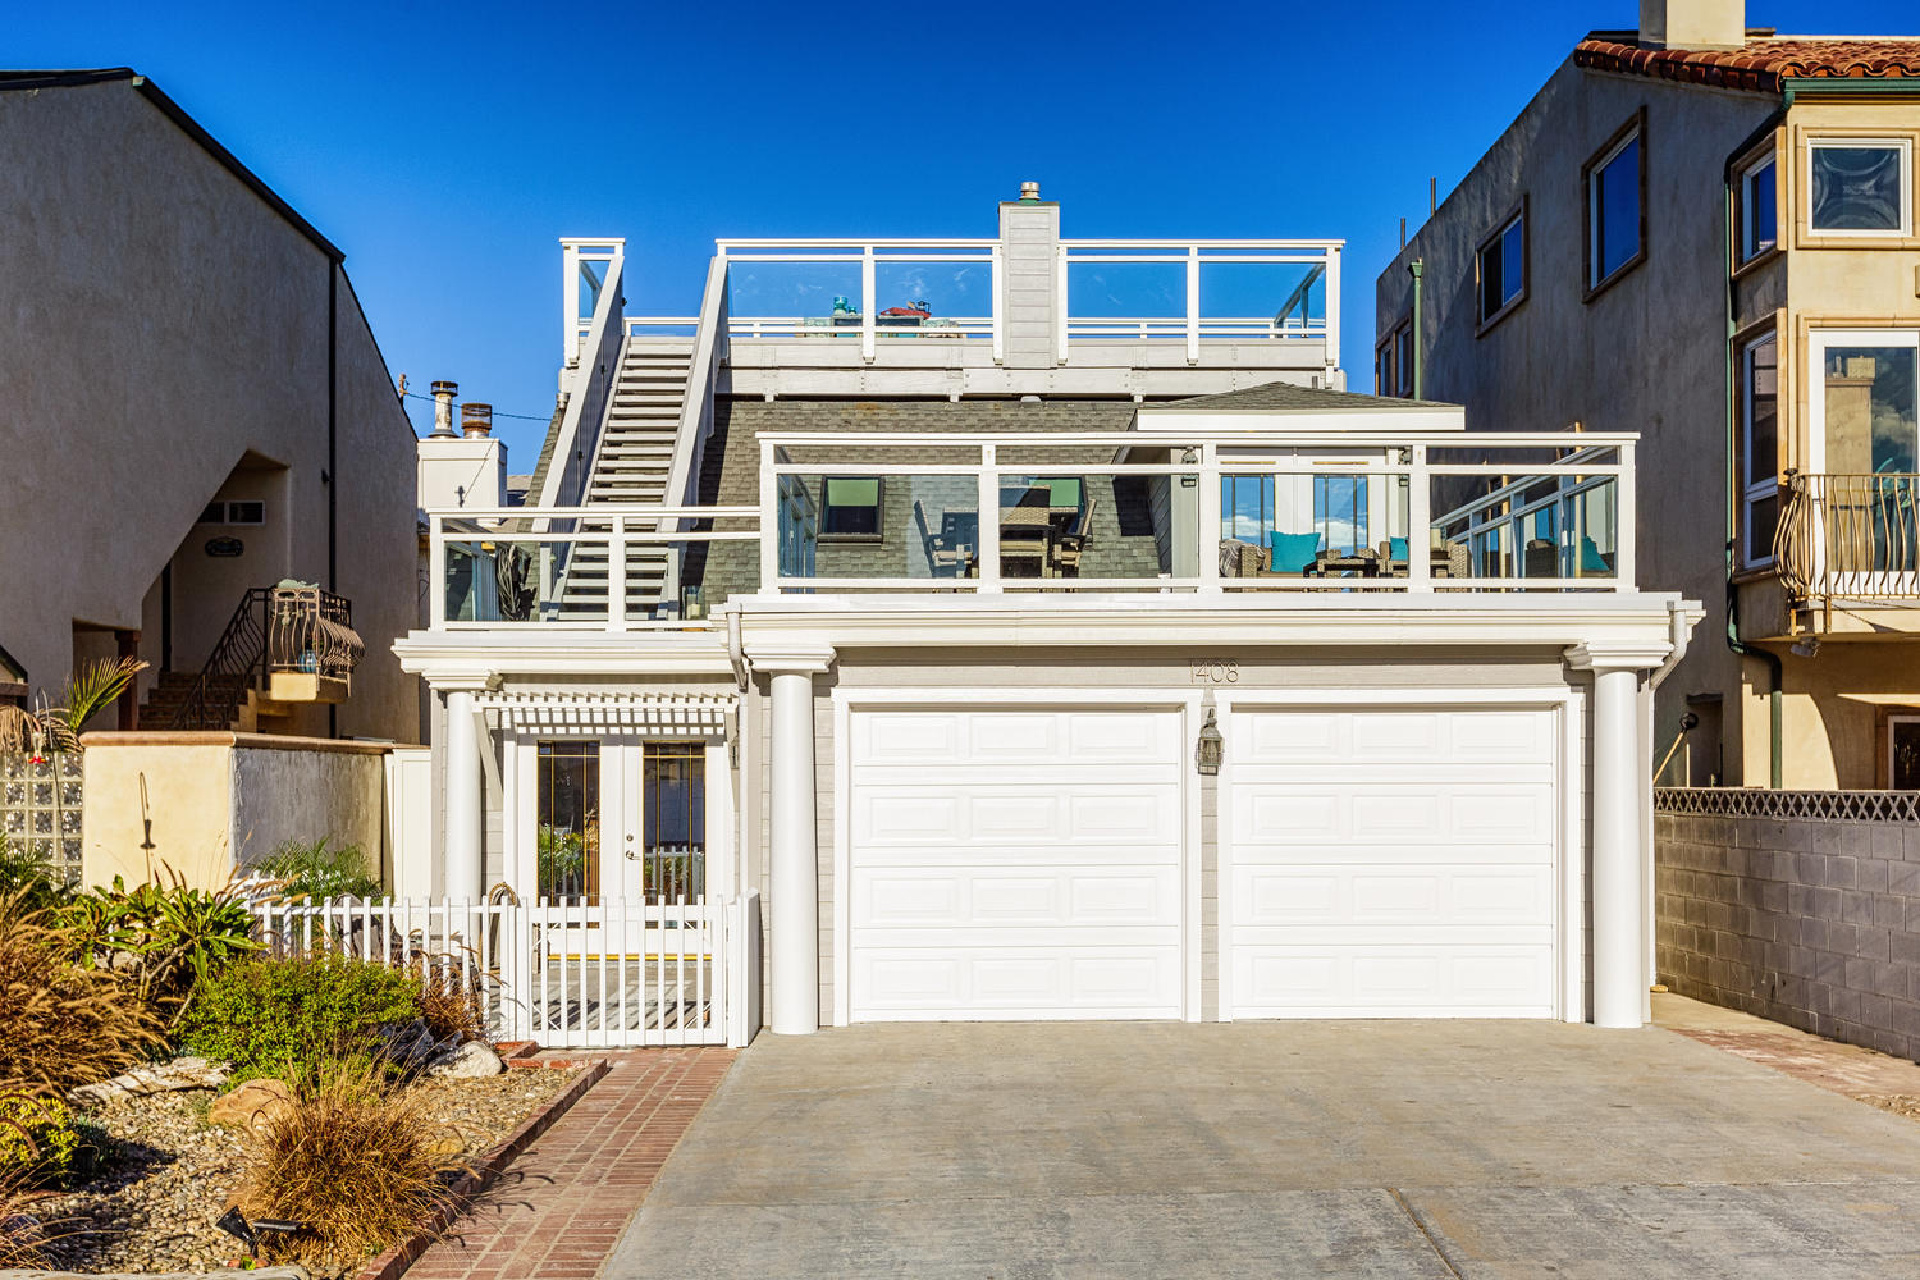 https://www.addressrealestate.com/media/images/blogs/38/2/b_28-1408-ocean-dr-oxnard-ca-93035-mls-size-025-24-front-of-home-1500x1000-72dpi.jpg